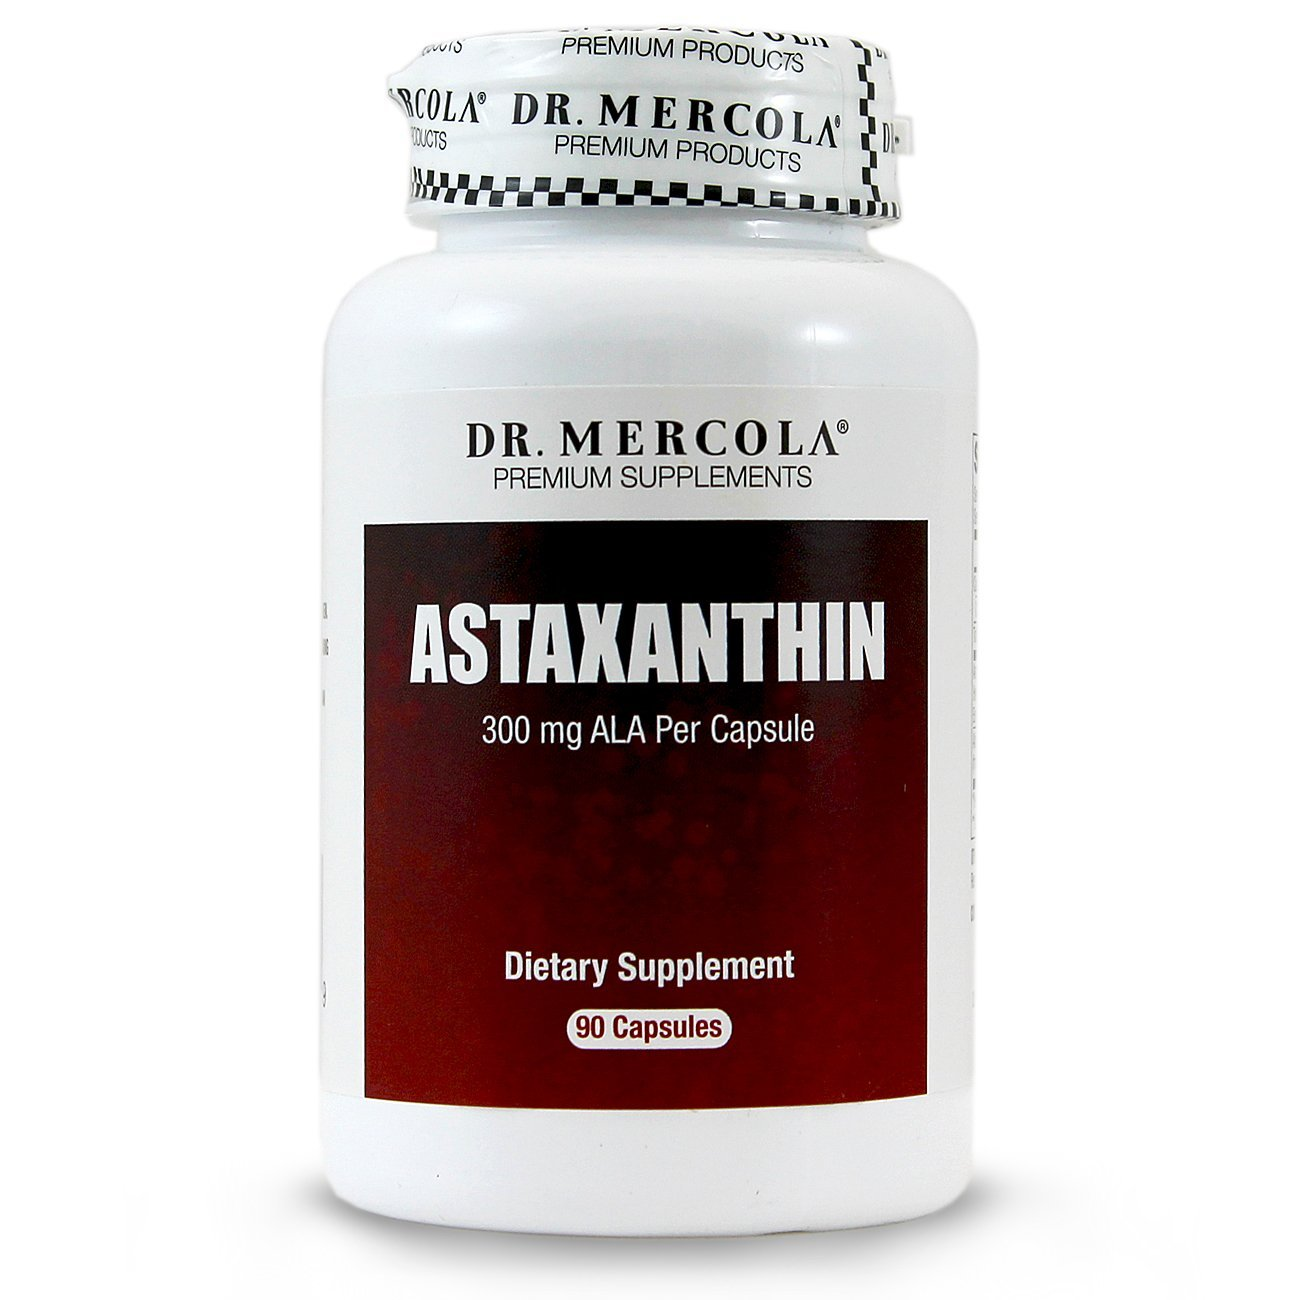 what vitamins are good for arthritis? Find out the benefits of astaxanthin